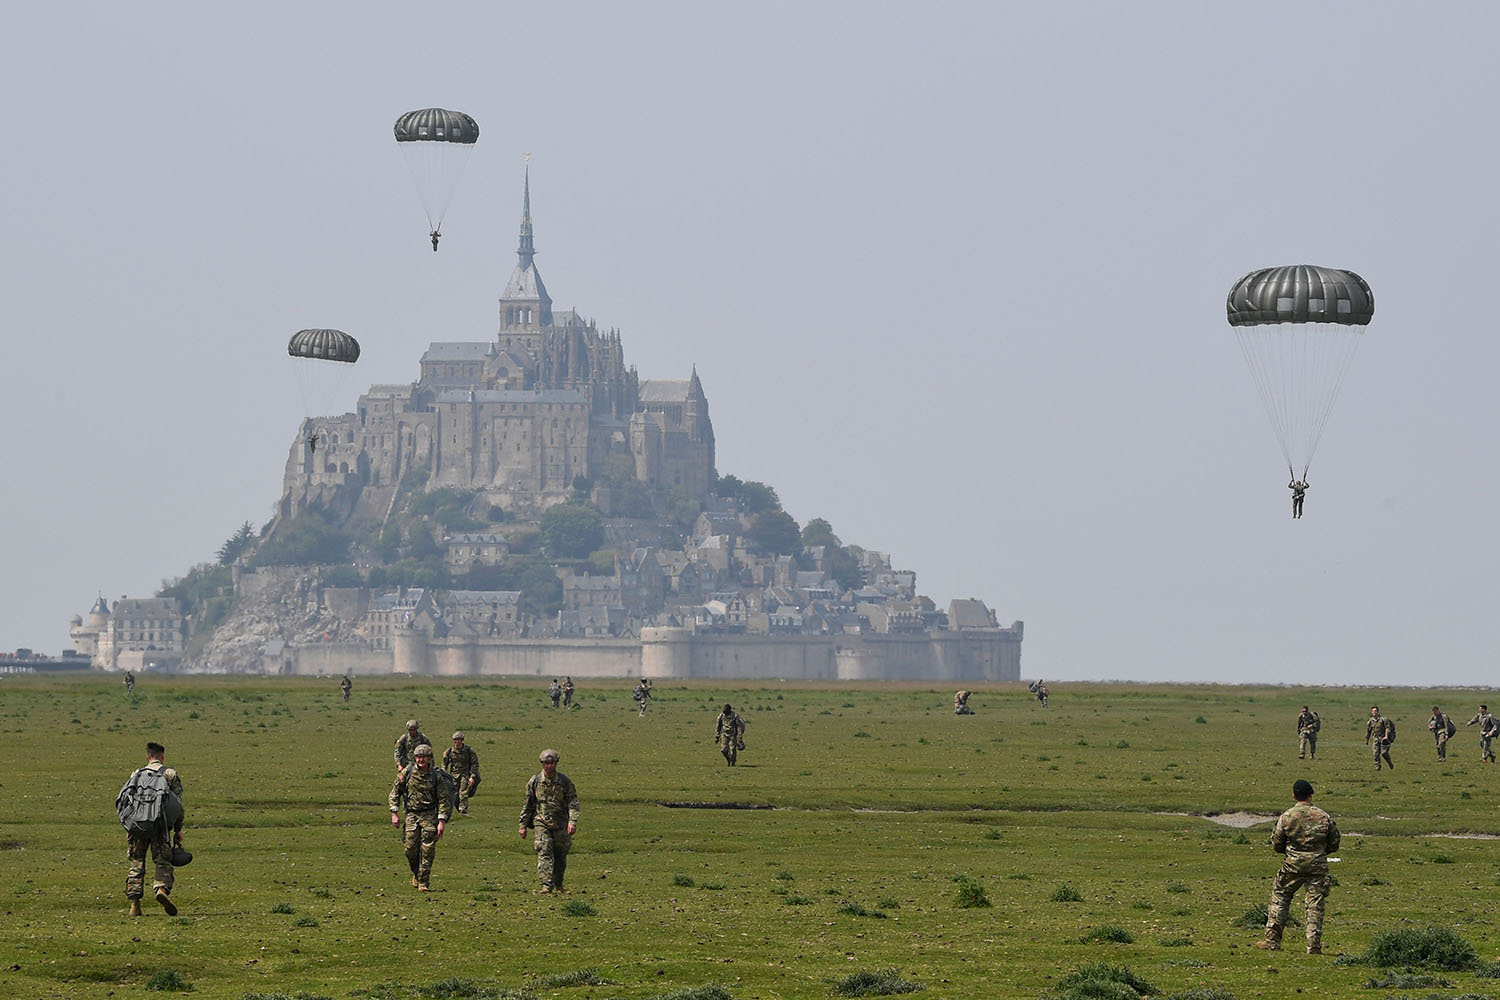 U.S. paratroopers walk back after jumping over Le Mont-Saint-Michel, northwestern France on May 18, less than three weeks before the 75th anniversary of the D-Day landings. DAMIEN MEYER/AFP/Getty Images